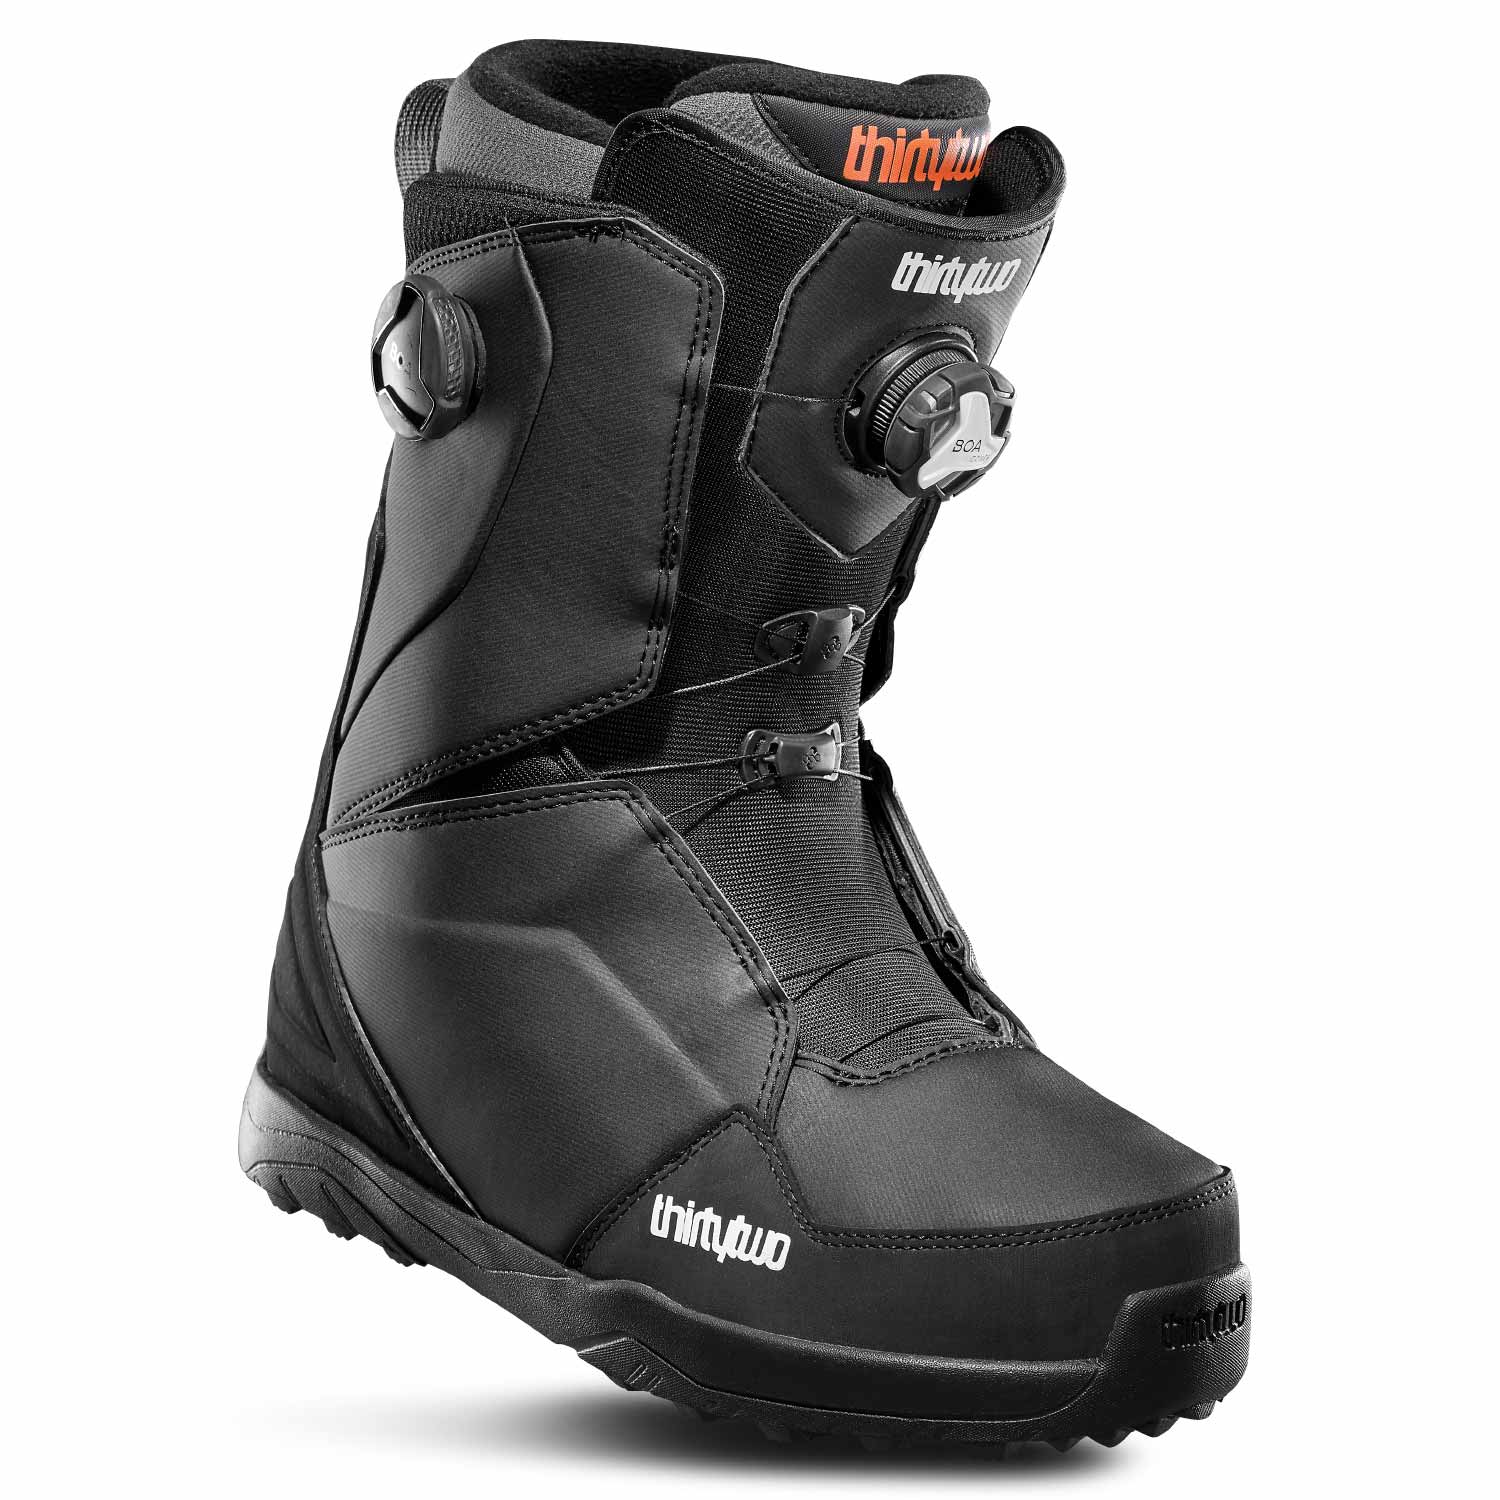 ThirtyTwo Lashed Double BOA Snowboard Boot Black 2020